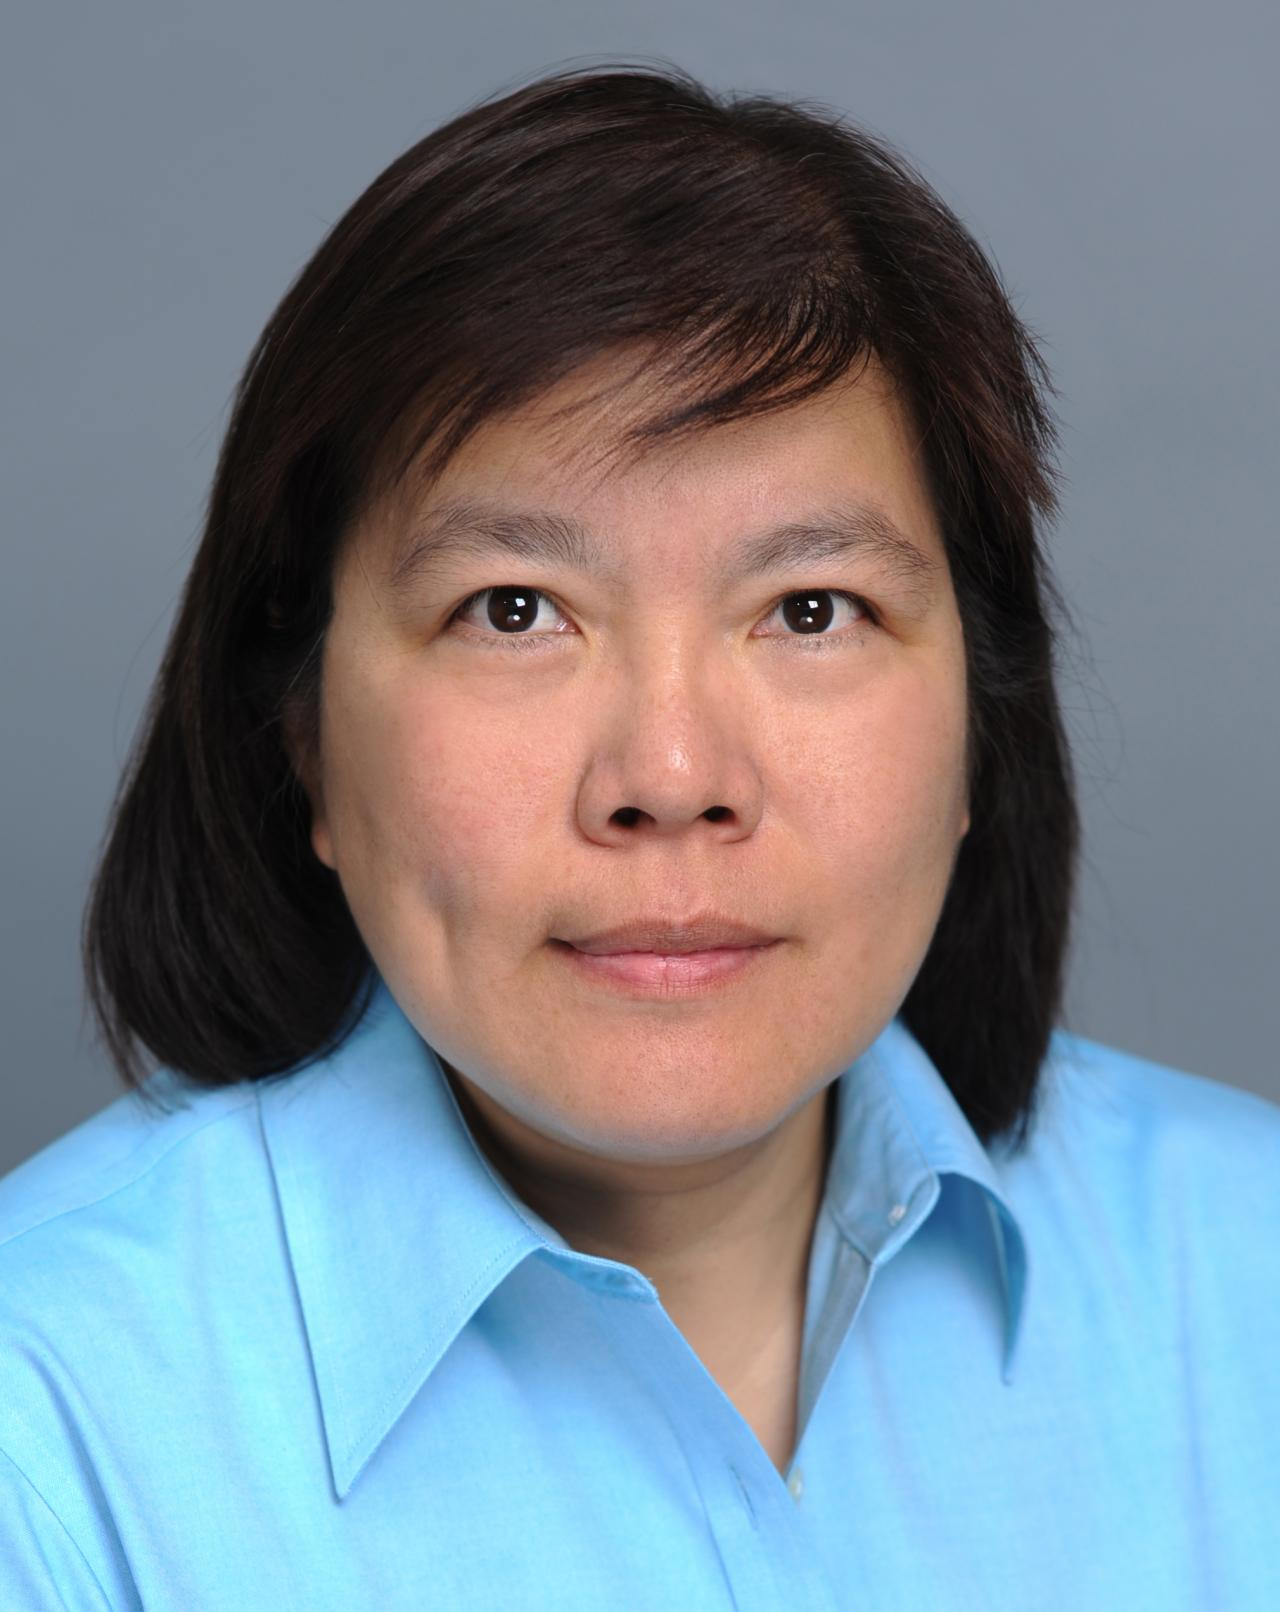 Ms. Ng - Ms. Ng holds an MBA in Finance from Boston College, Wallace E. Carroll Graduate School of Management and a BA in Mathematics from Queens College (CUNY). She is a graduate of the prestigious Stuyvesant High School in New York City and is fluent in Cantonese and Mandarin and has a working knowledge of Spanish and German. Ms. Ng's professional career began at Macy*s New York, where she analyzed the corporation's growth strategies for profitability potential. She developed the profit and loss forecasts used to identify the corporation's future direction, sales goals, and management strategies. As the Merchandise Controller for the Retail Division of Liz Claiborne Inc., Ms. Ng launched the company's first open-to-buy program, giving buyers and planners accountability for their buying and merchandising strategies to better impact sales and margin goals.